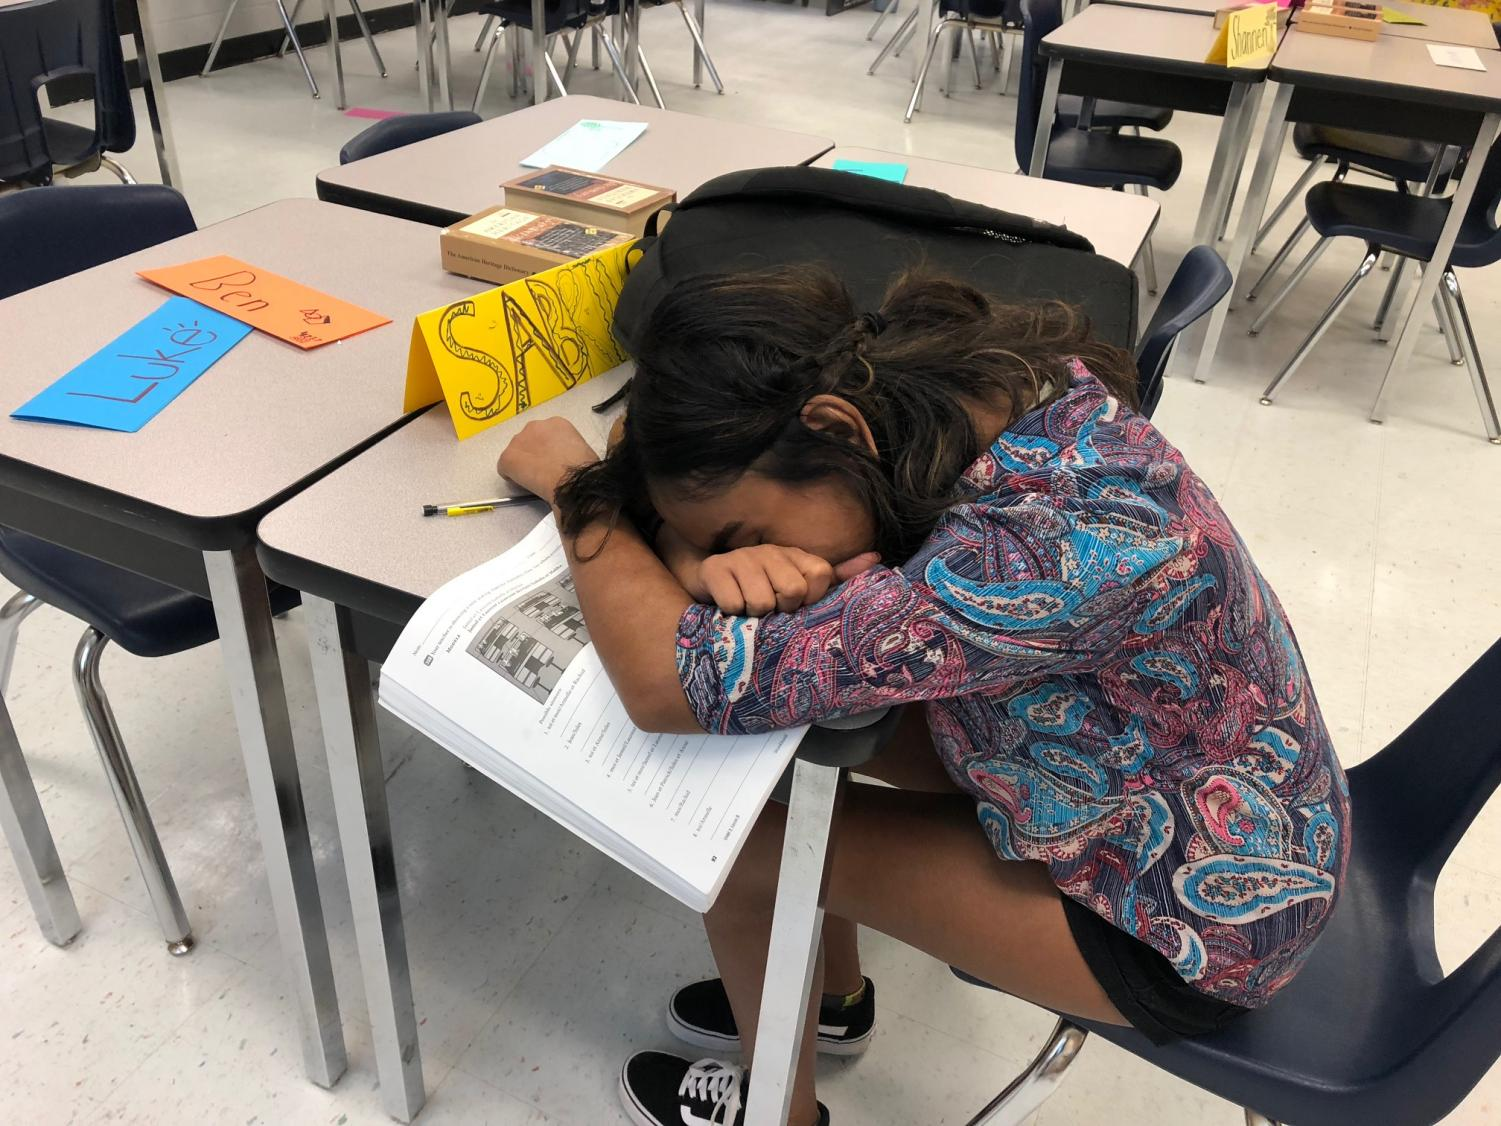 Sophomore Sabrine DeSilva takes a power-nap at the end of class. After a long day, she likes to recharge her energy.